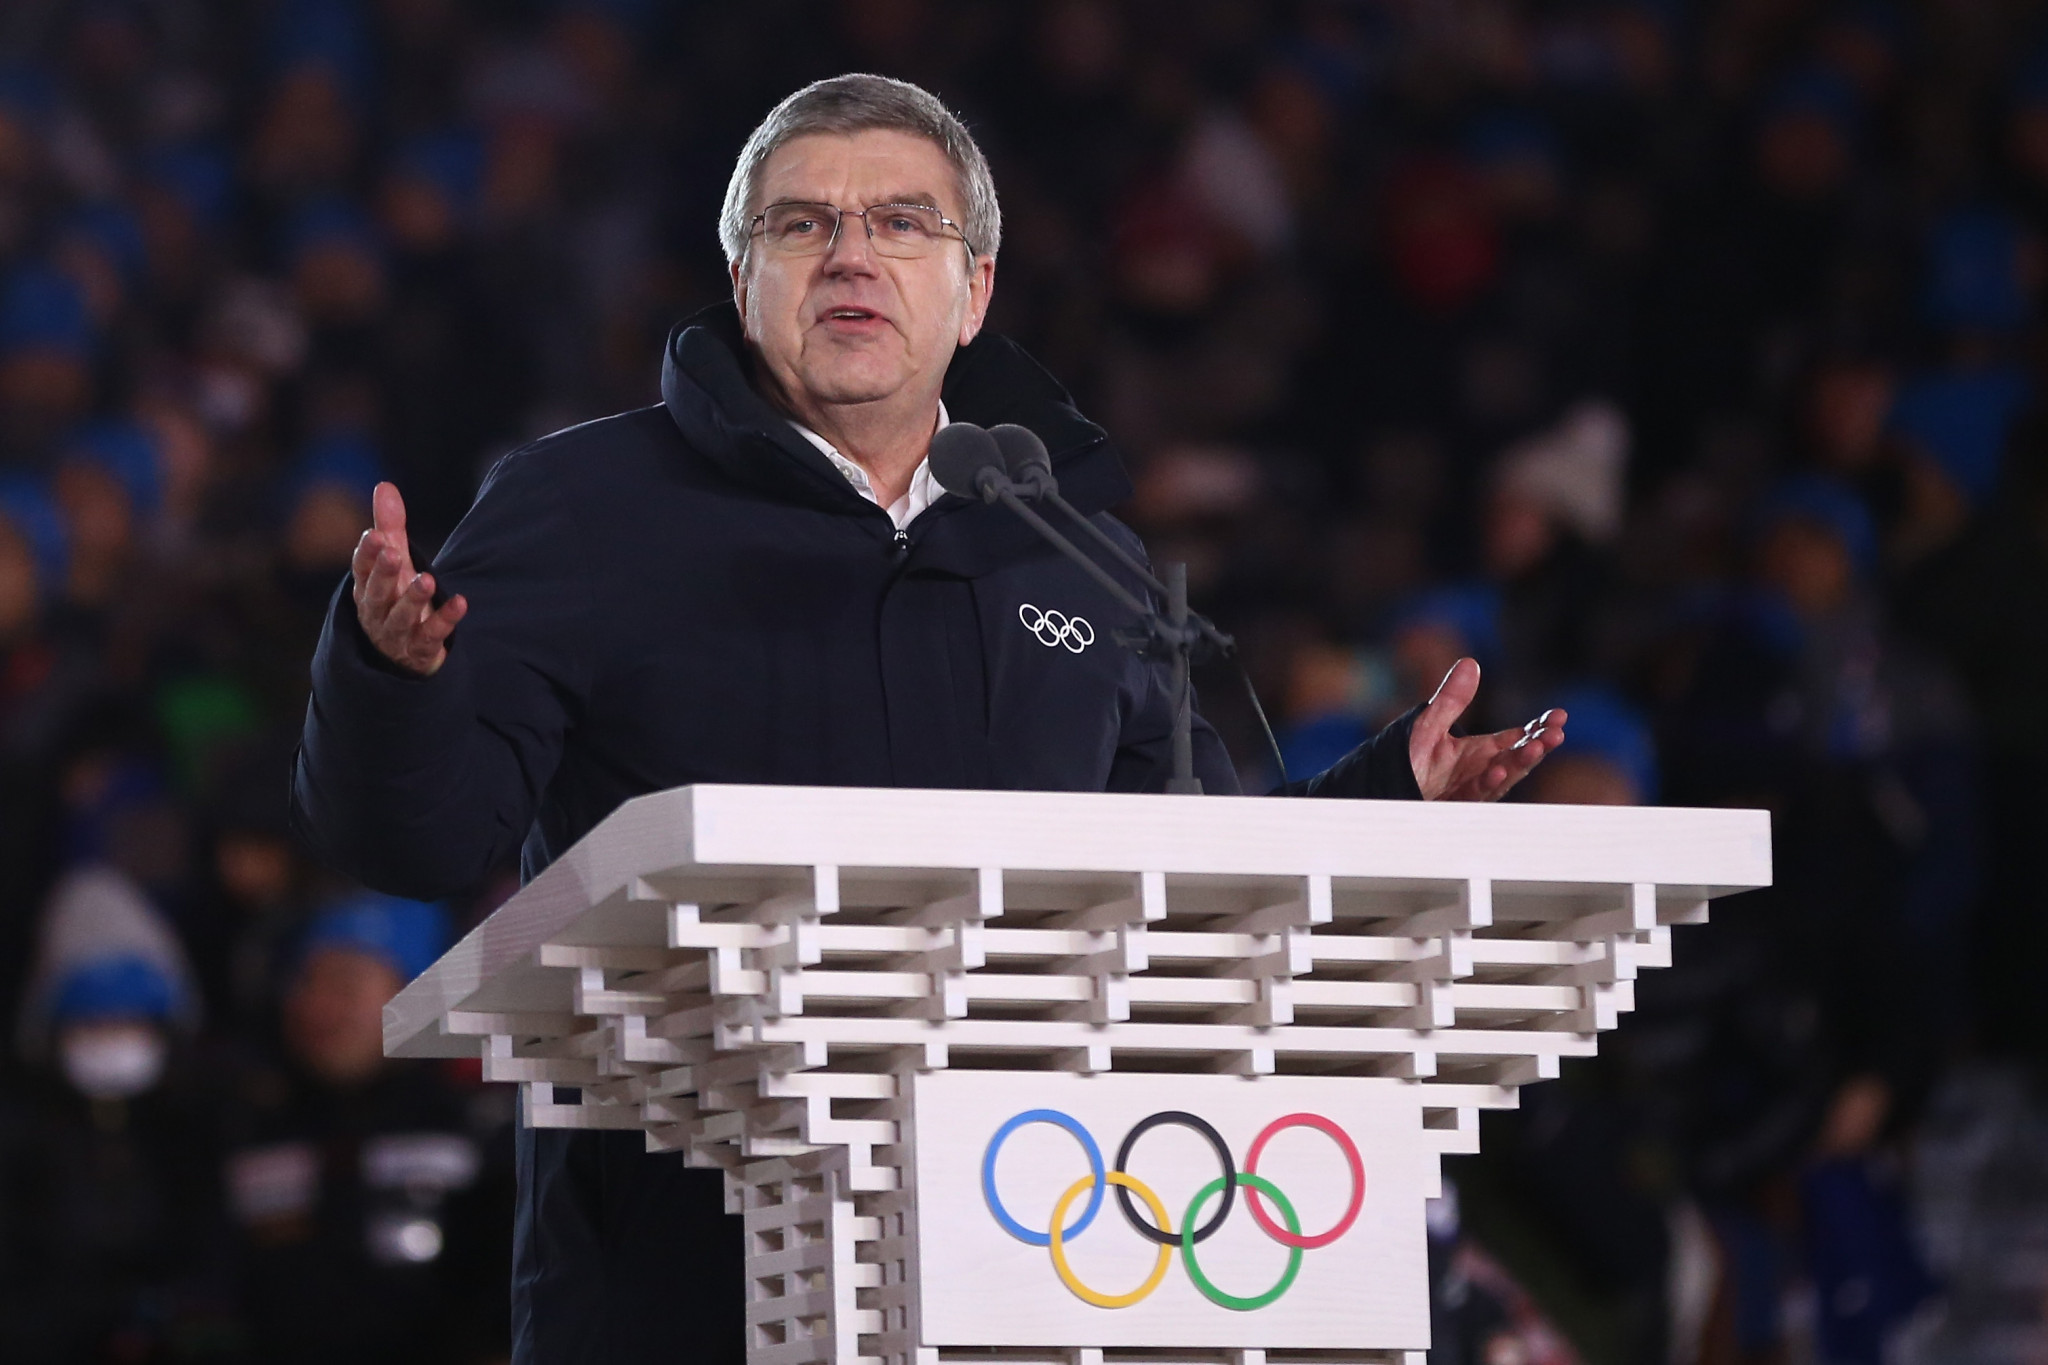 IOC President Thomas Bach was among more than 200,000 visitors to Team Korea House during the Pyeongchang Winter Games ©Getty Images